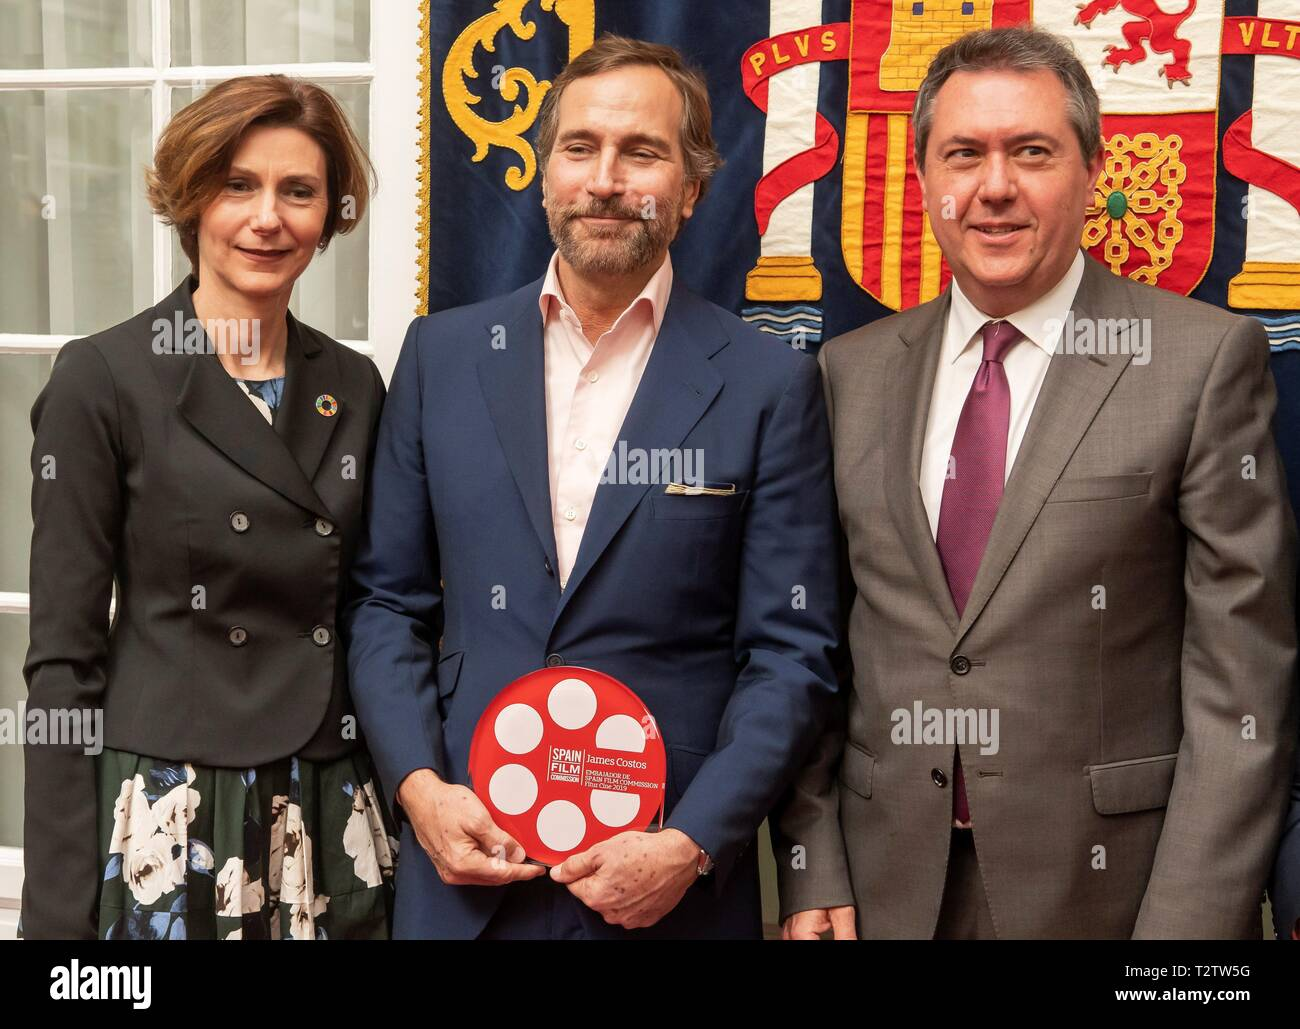 US diplomat James Costos, who was US Ambassador to Spain from 2013 to 2017, poses with Spain's Secretary of Tourism Isabel Oliver (L) and Sevilla's Mayor Juan Espadas Cejas (R) after receiving the first title of 'Honorary Ambassador' given by the Spain Film Commission (SFC) during a ceremony held in Seville, Spain, 04 April 2019. Costos was awarded in recognition of his efforts in the internationalization of the Spanish cinema and mediation in the shooting in Spain of the fifth season of the 'Game of Thrones' series as well as movies like 'The Bourne Identity' or 'Exodus'. EFE/ Raul Caro - Stock Image